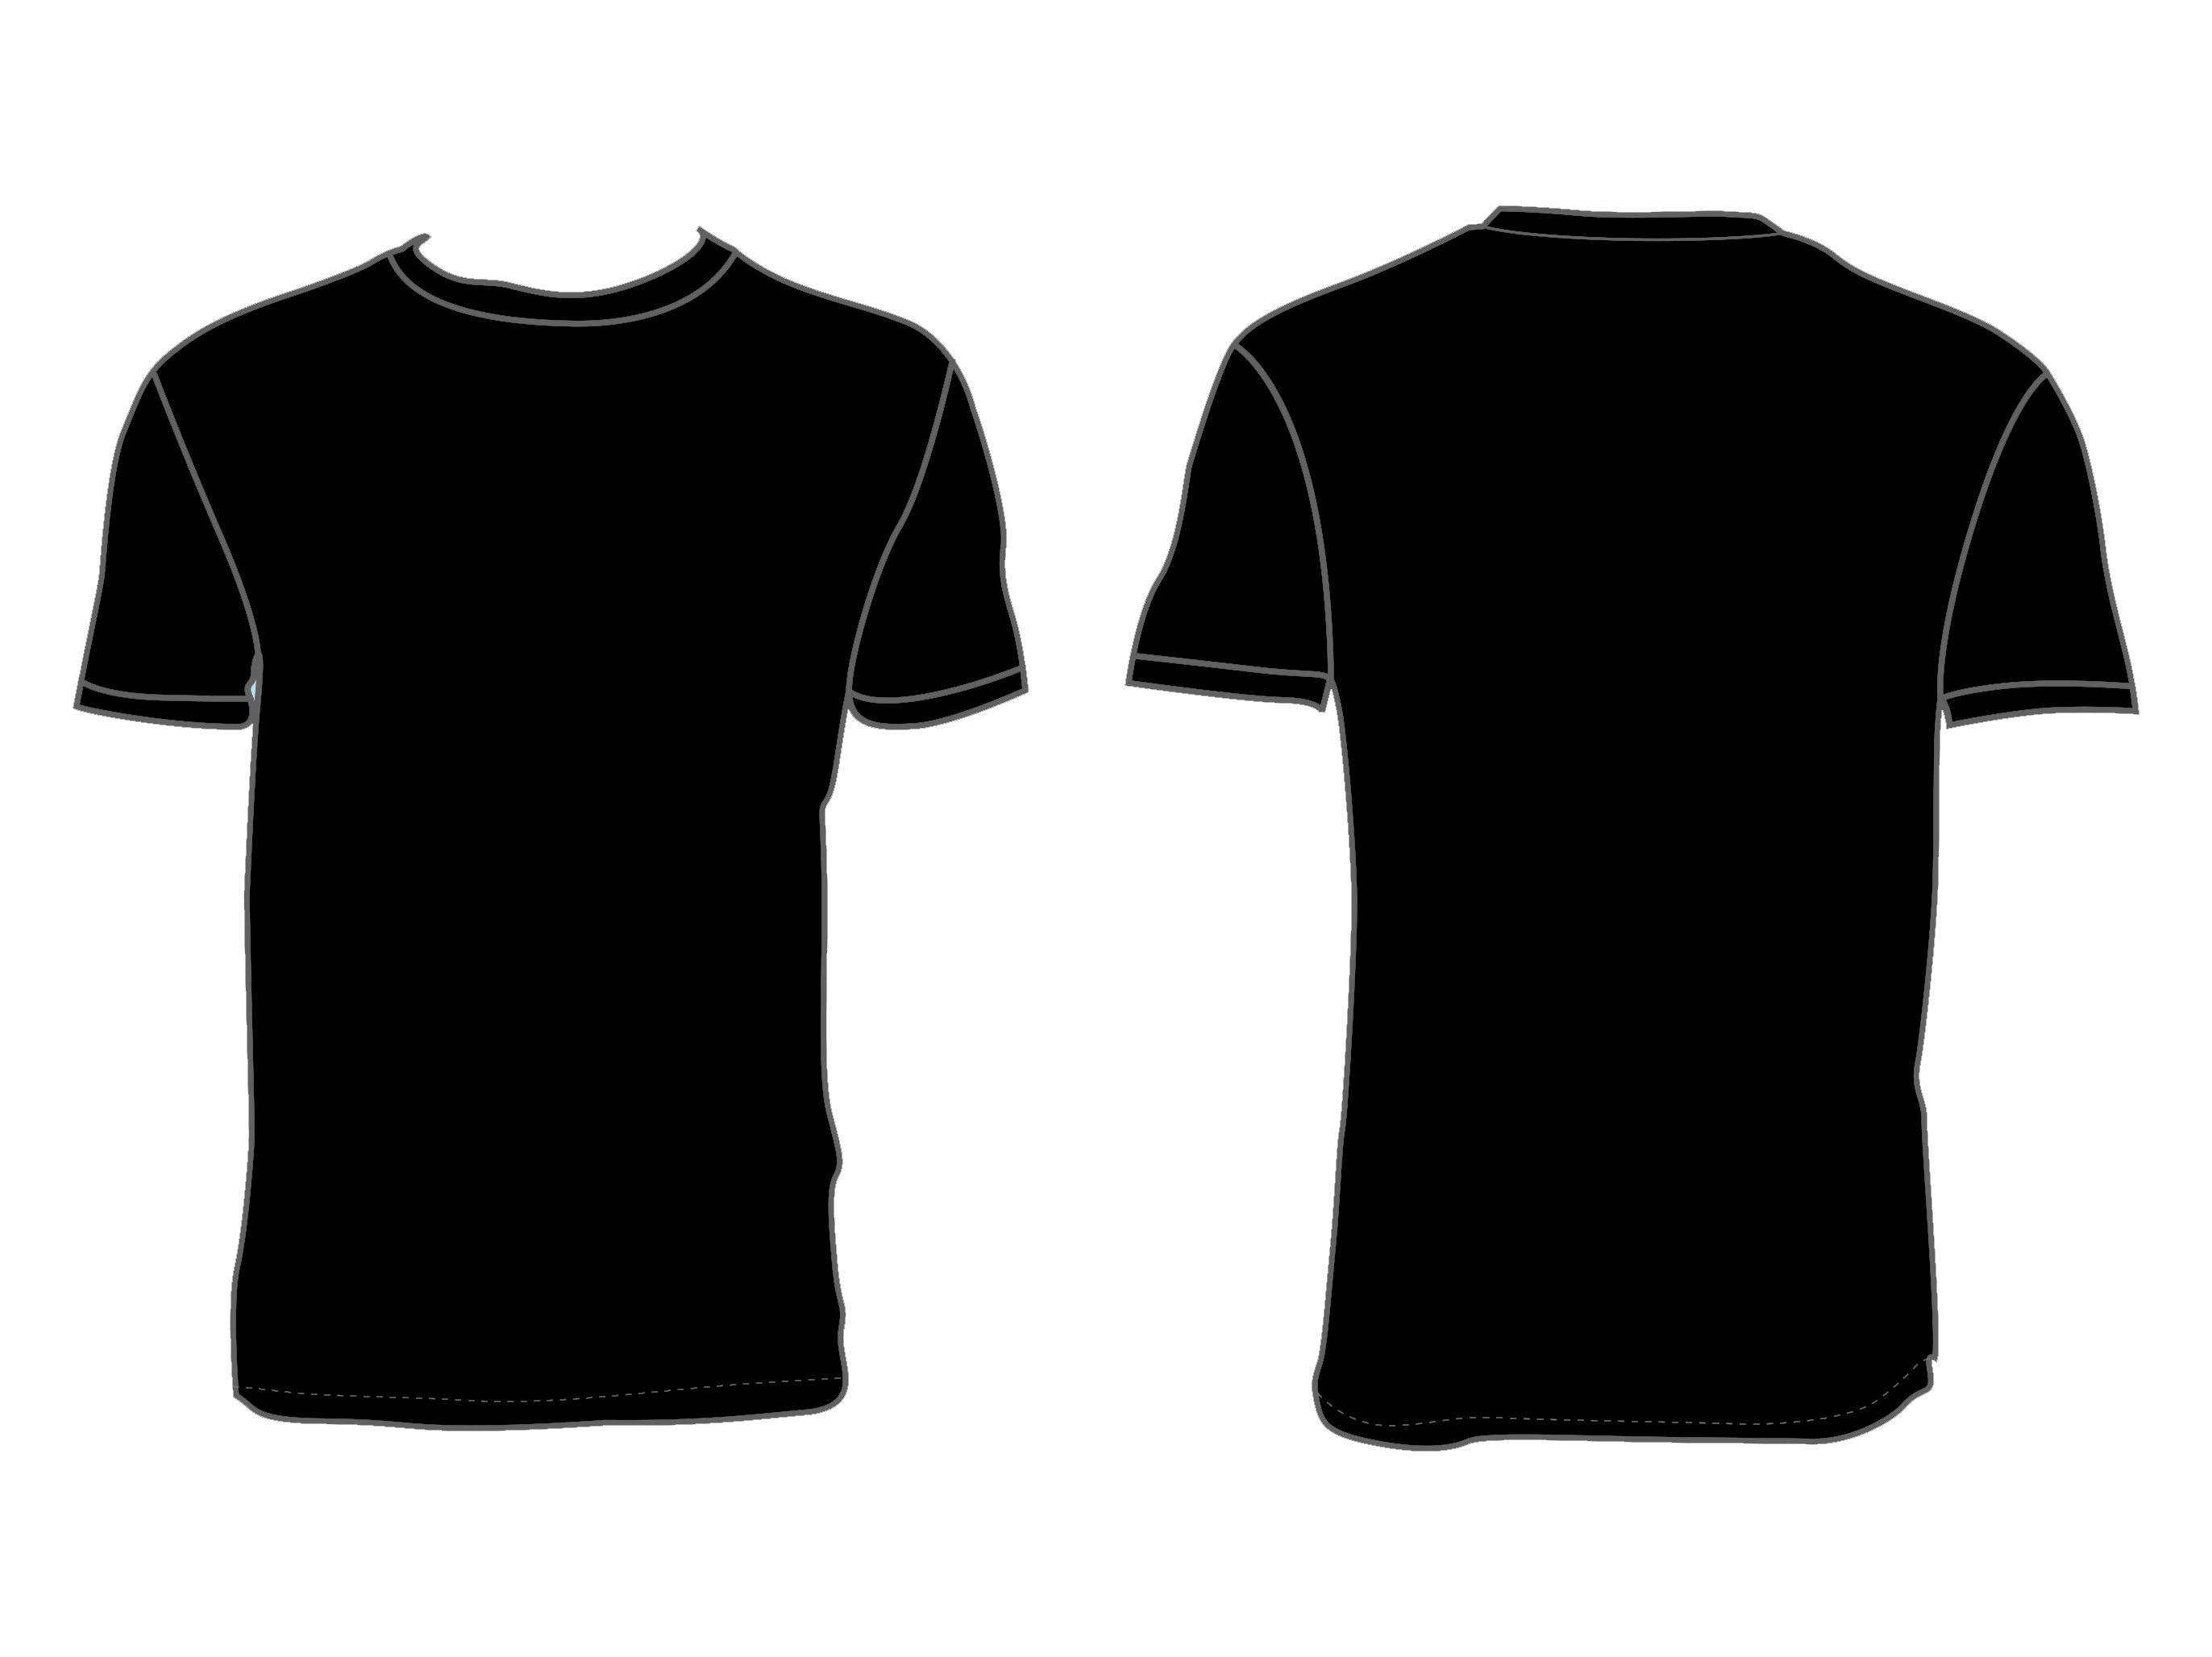 Black shirt template png. T polo clothing versus